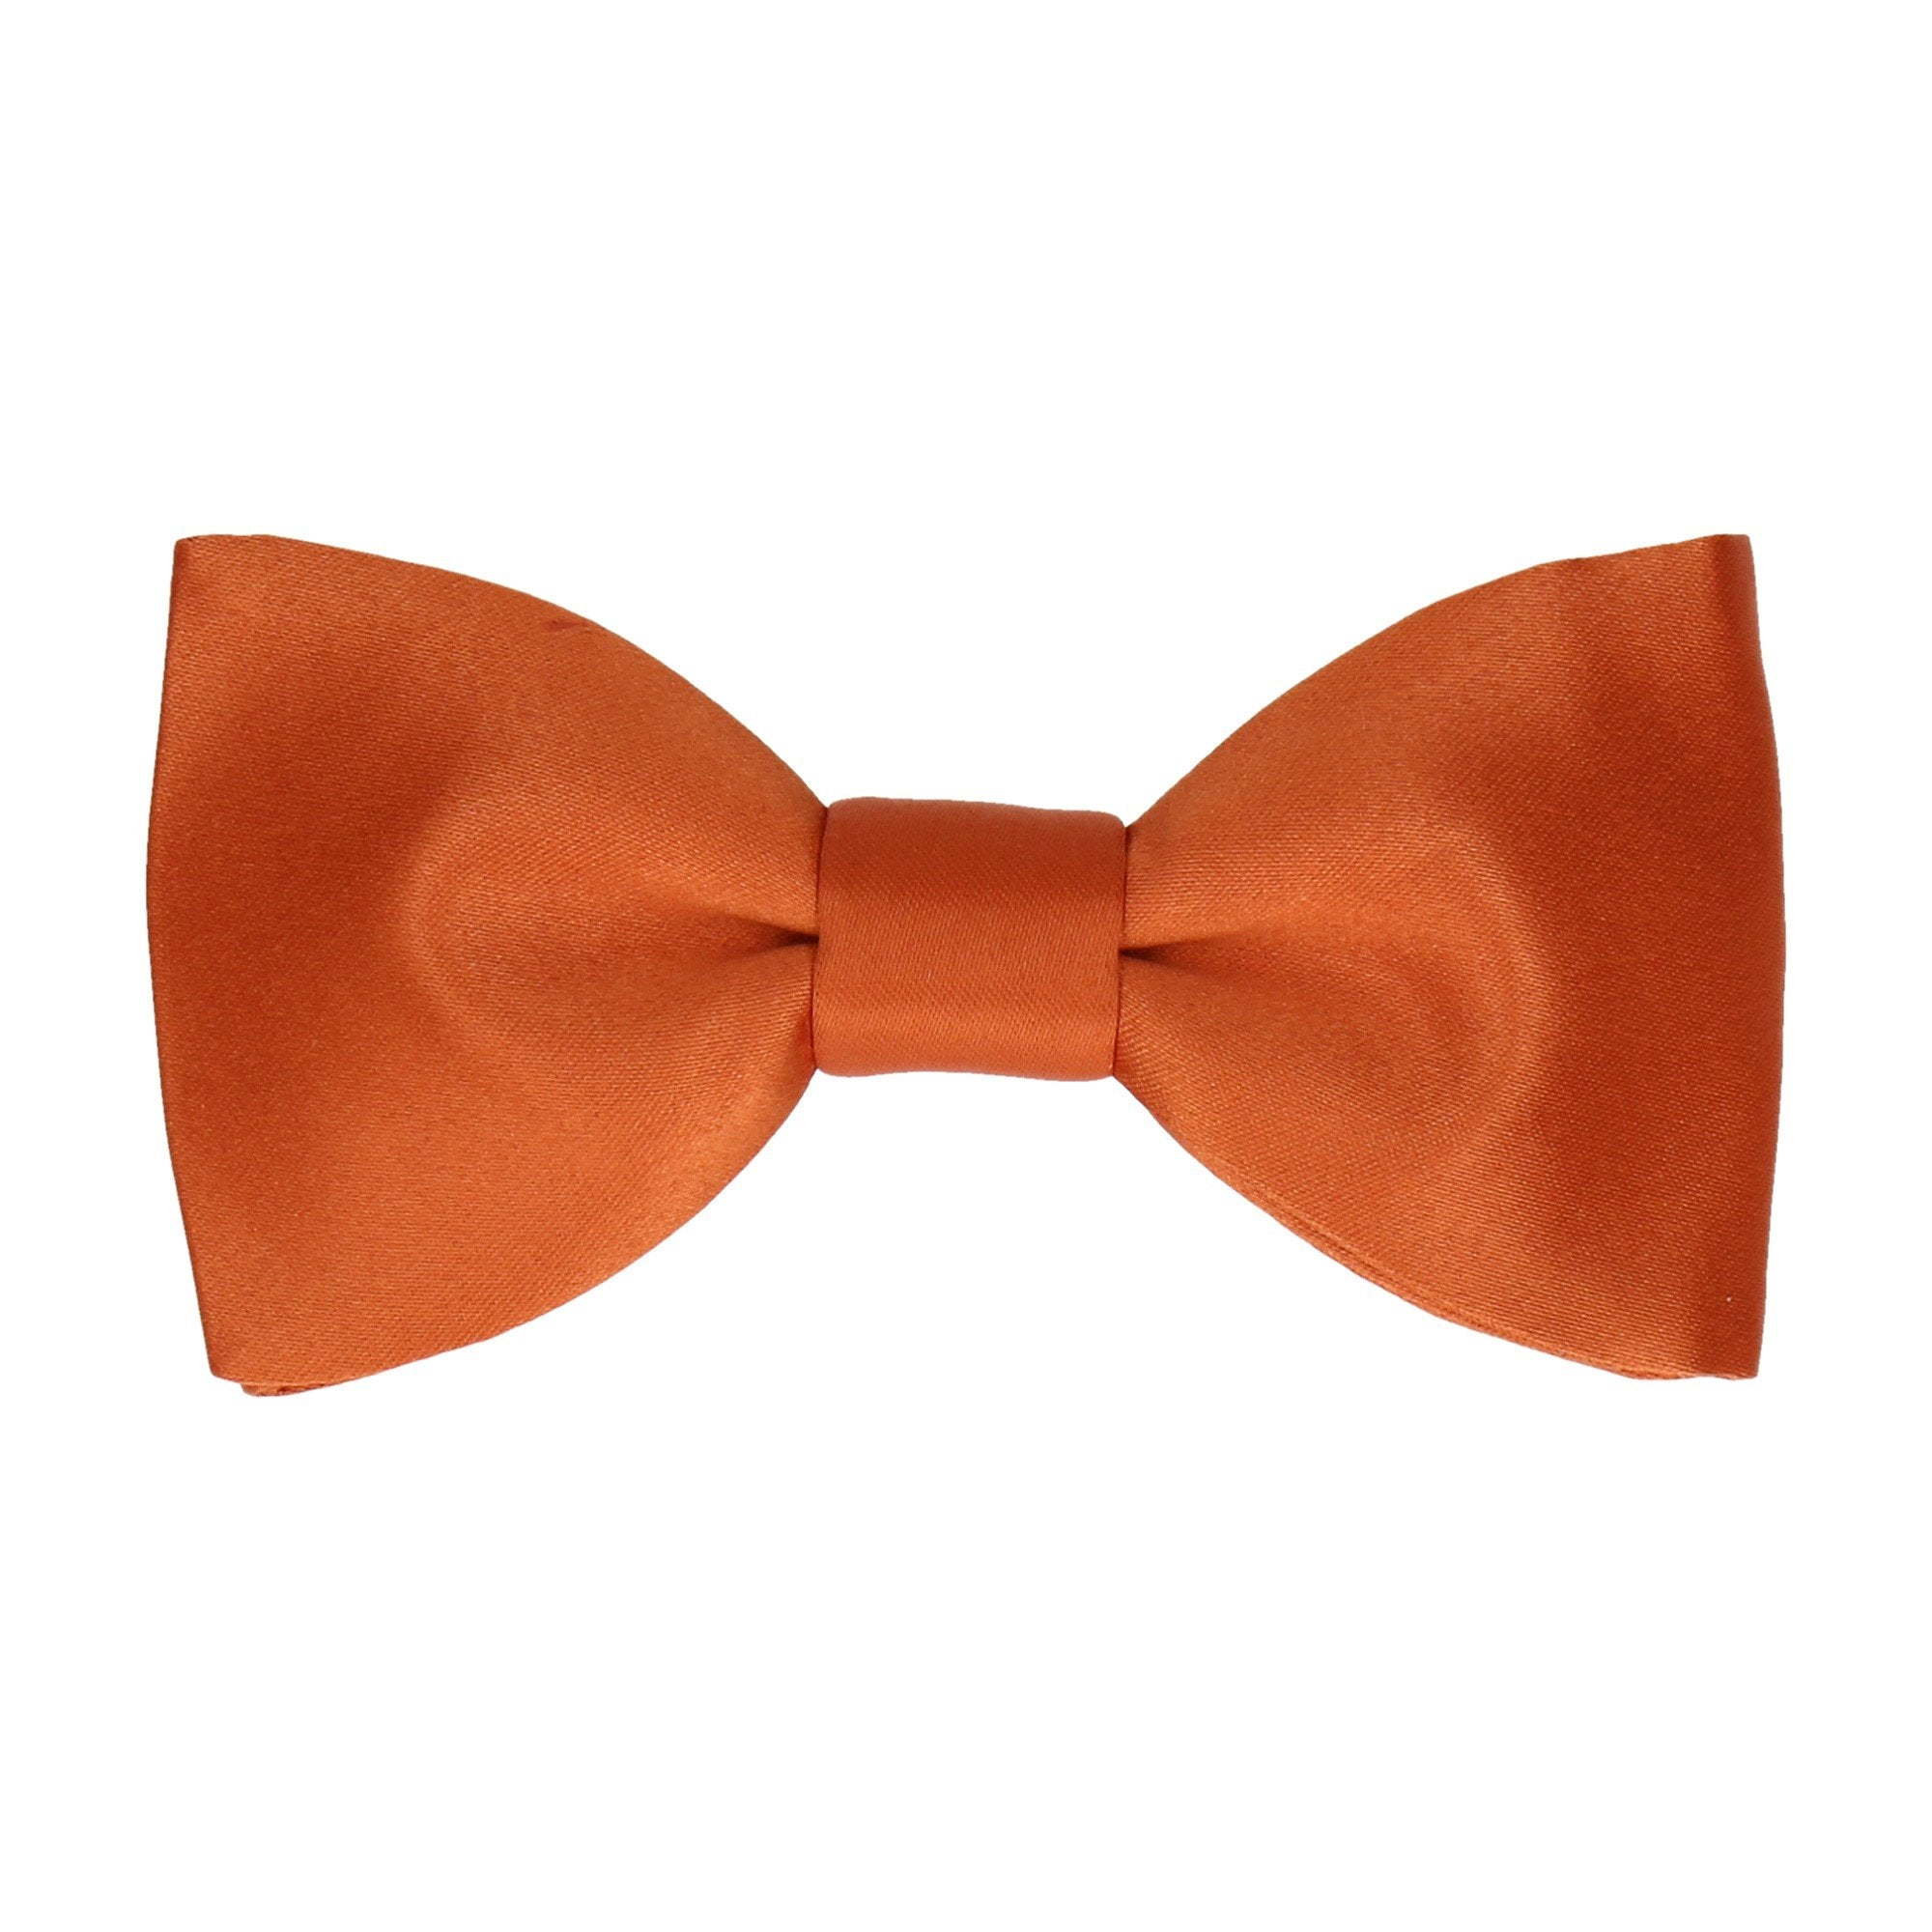 Satin in Copper Bow Tie